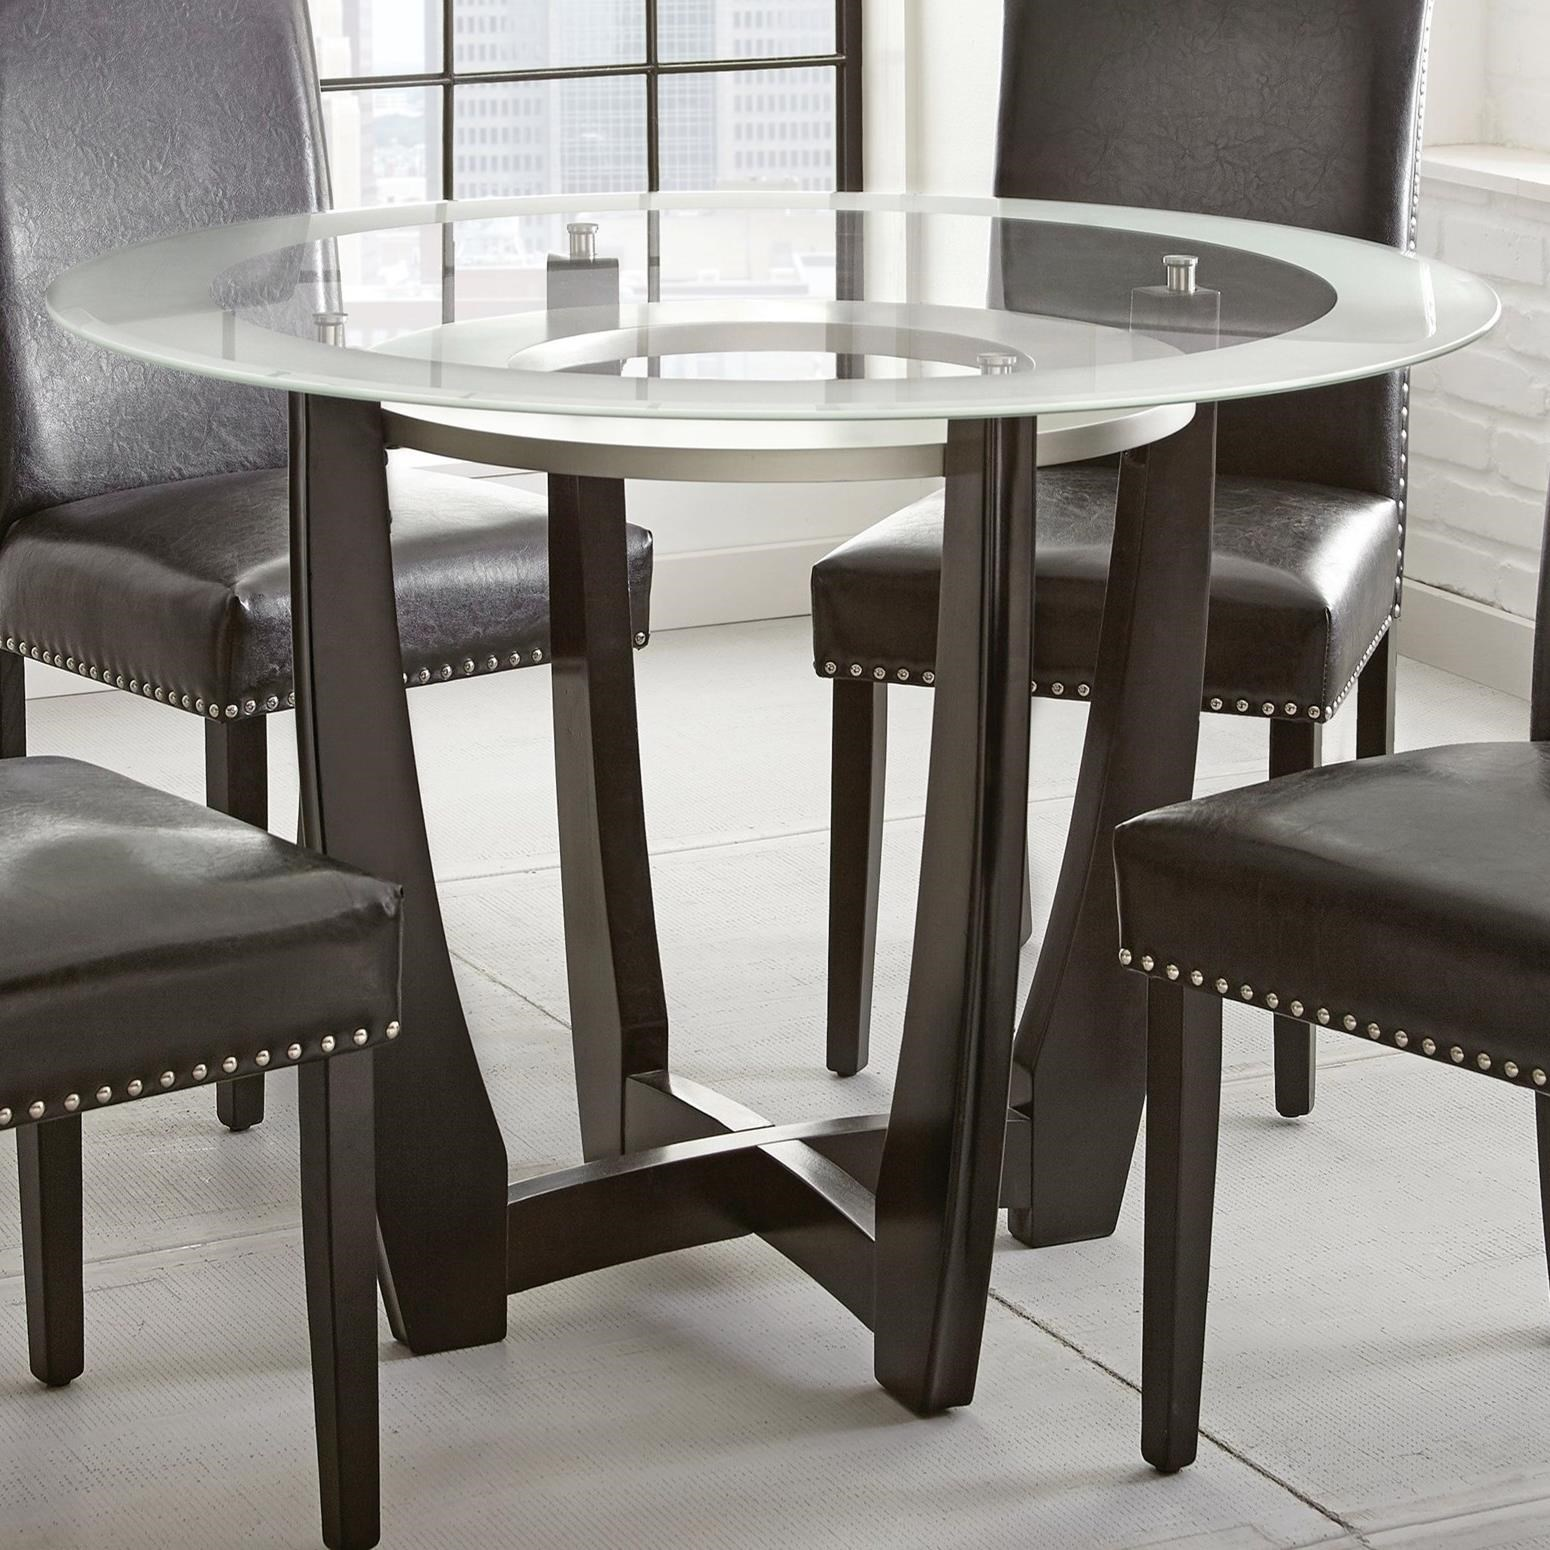 Picture of: Steve Silver Verano Contemporary 45 Round Glass Top Dining Table Standard Furniture Dining Tables